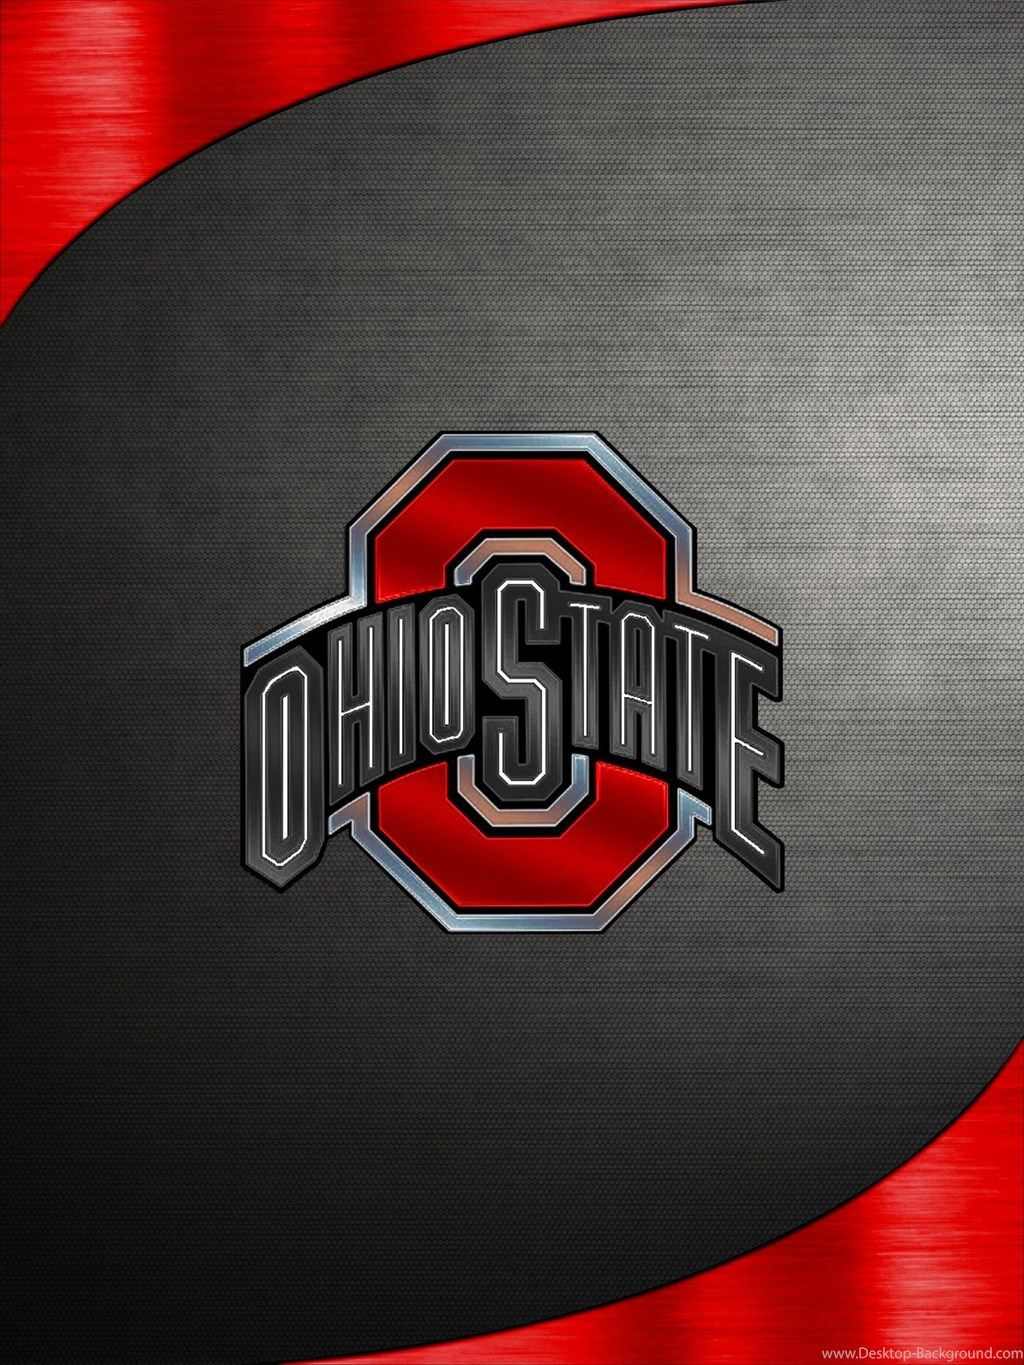 Ohio State Iphone Wallpapers Top Free Ohio State Iphone Backgrounds Wallpaperaccess